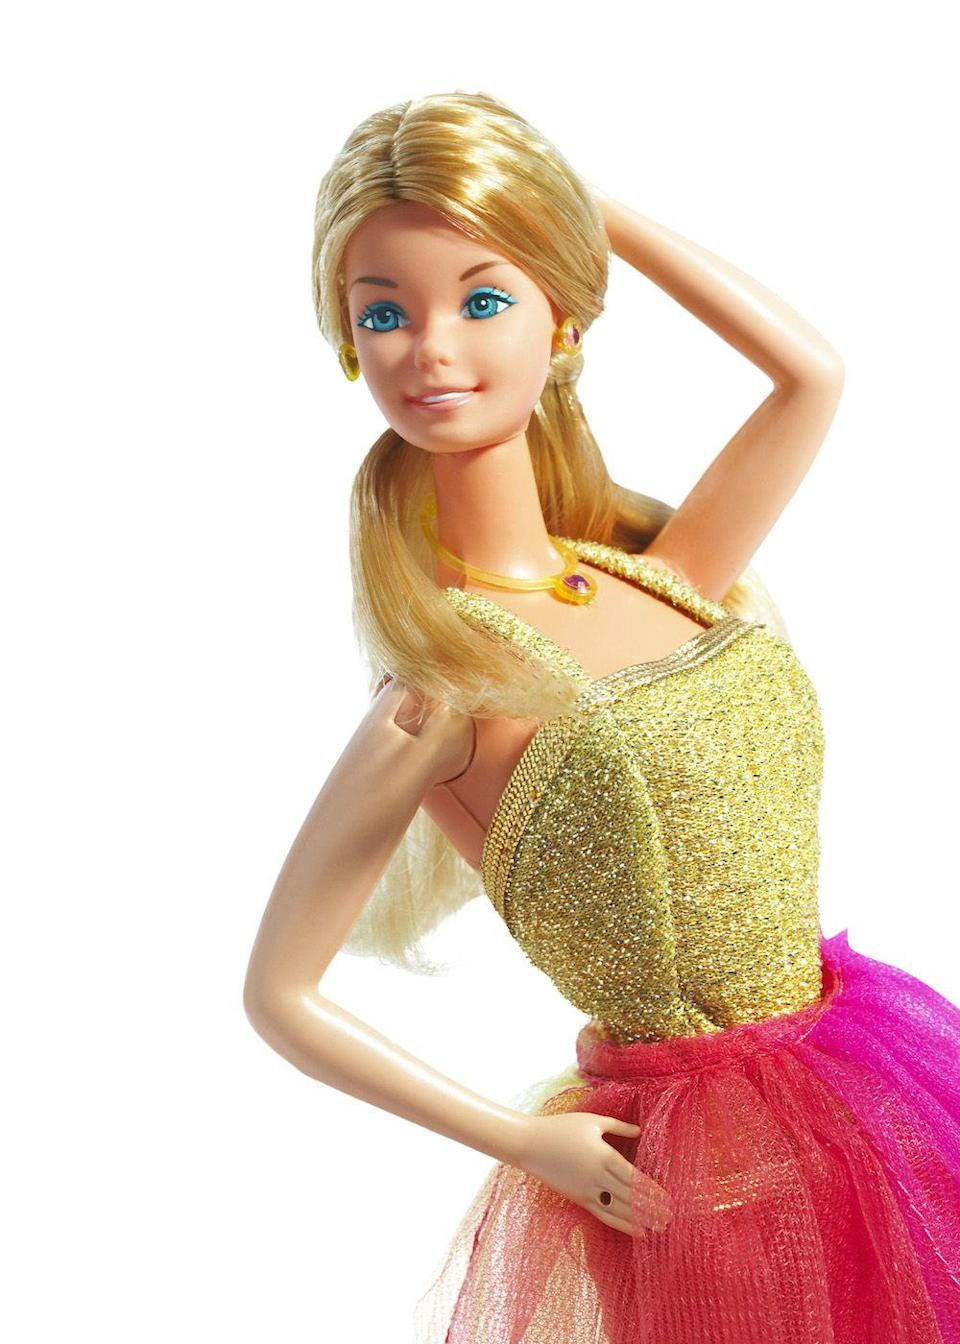 <p>Though she's been a model in every decade, the 1977 Fashion Model Barbie is a favorite for her colorful ensemble. </p>